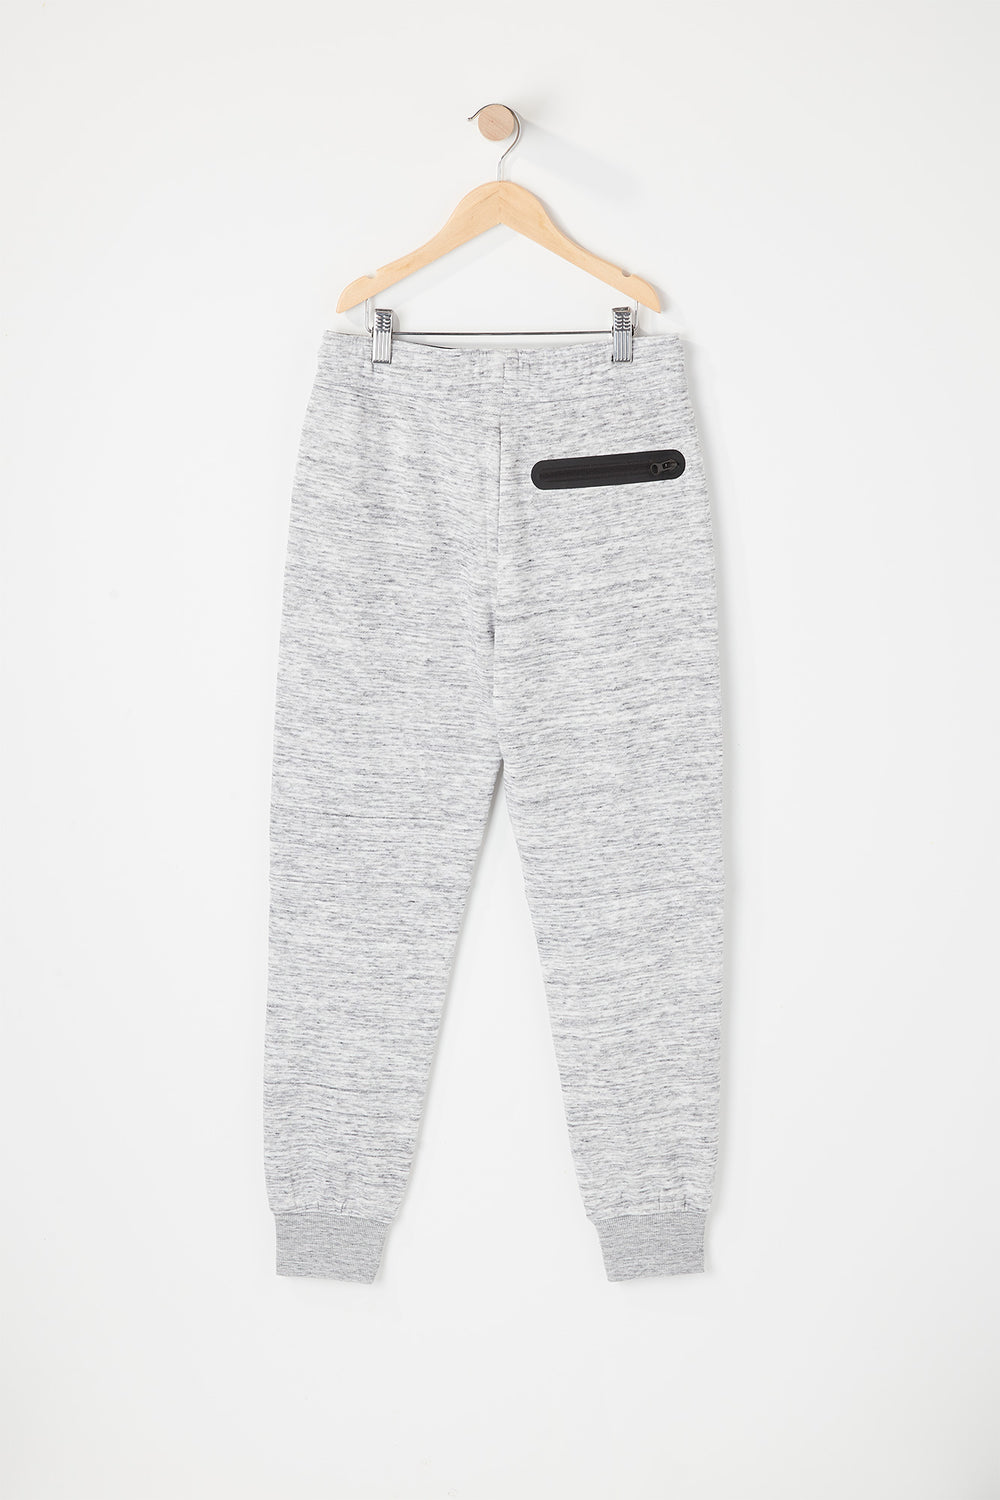 West49 Youth Zip Pocket Jogger Heather Grey